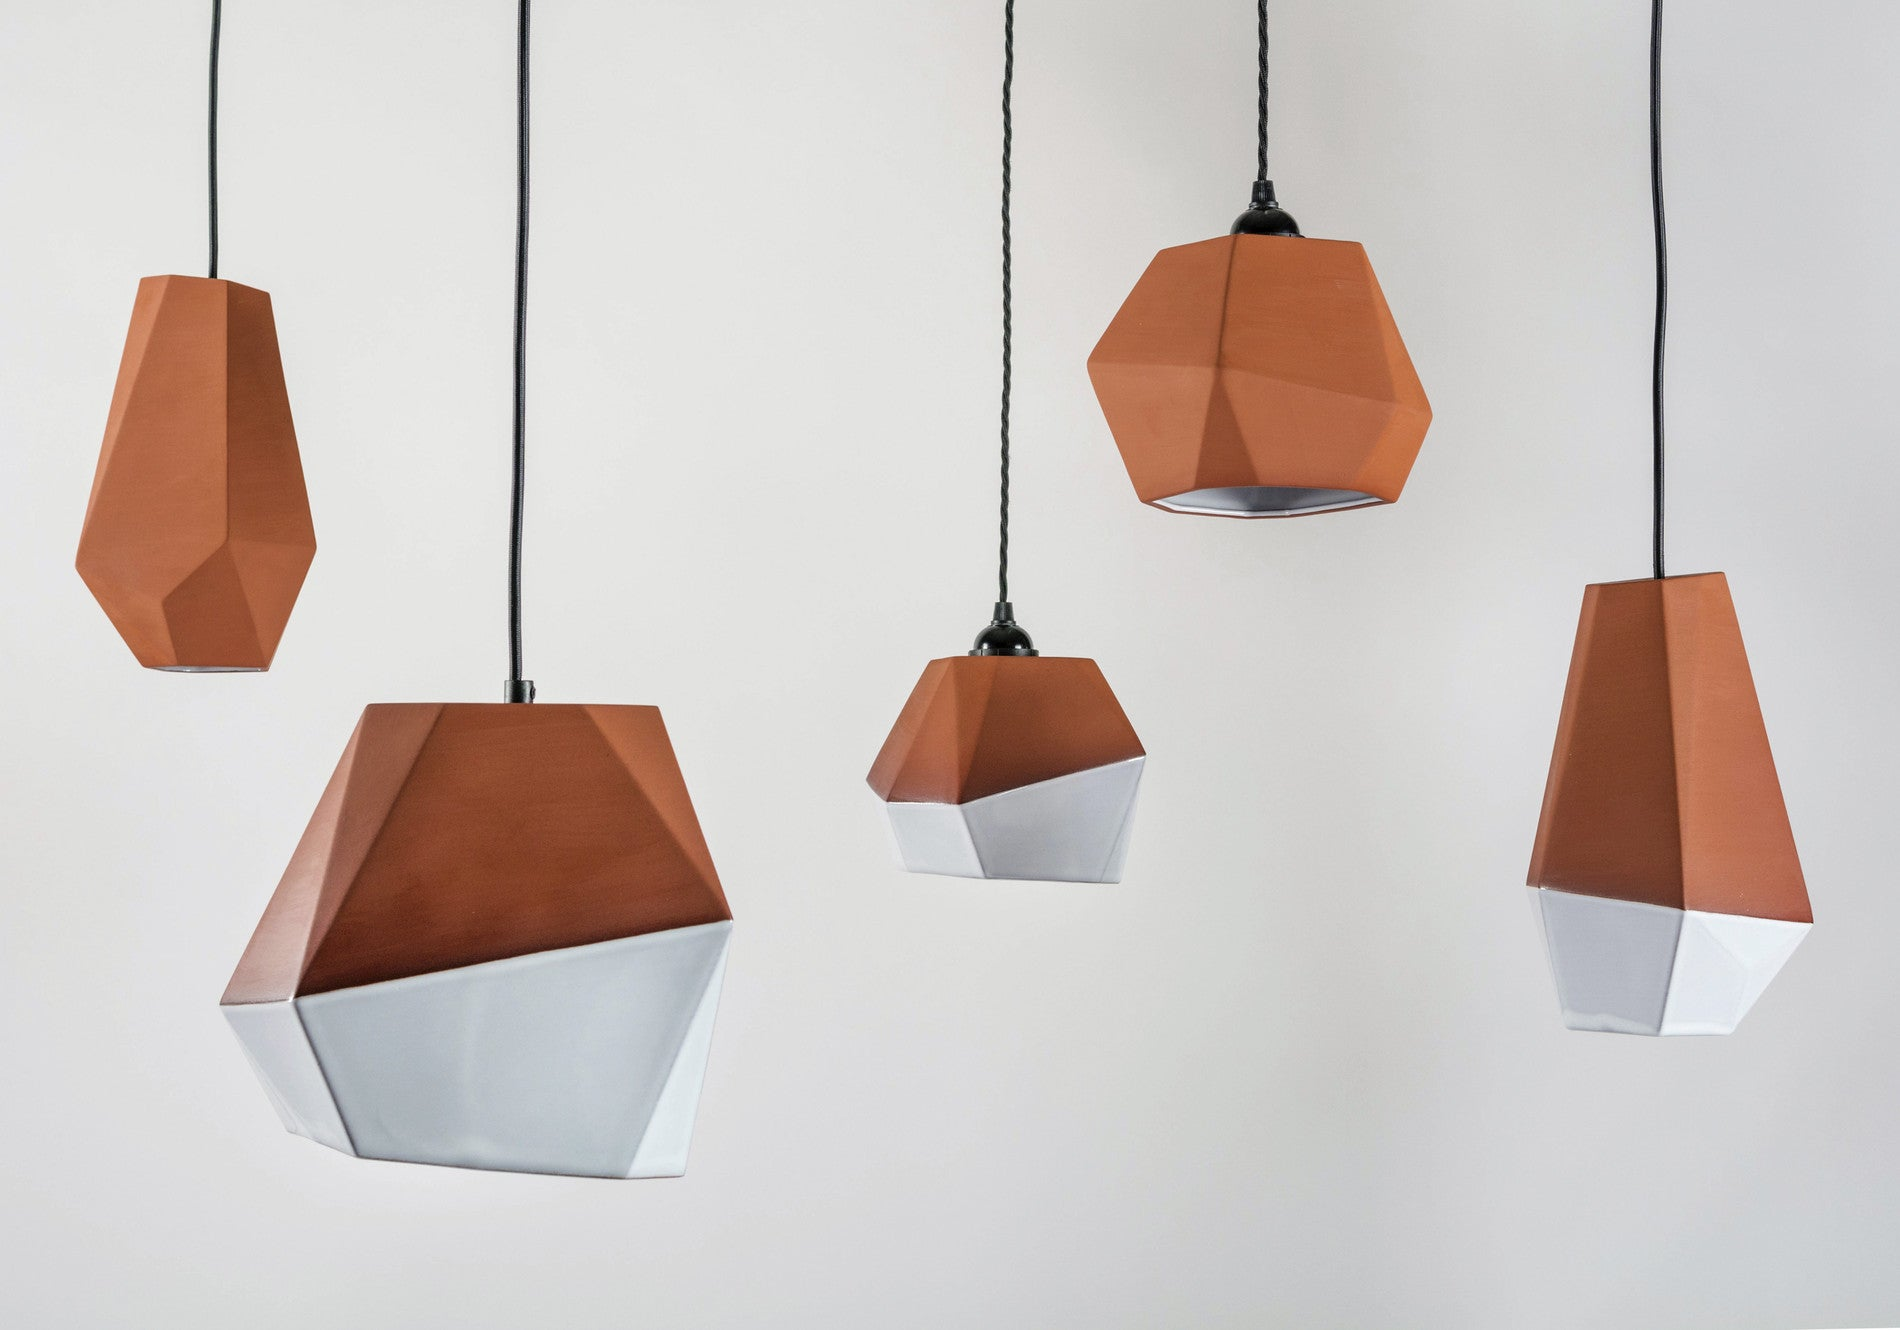 Geometric Pendants x Nick Fraser